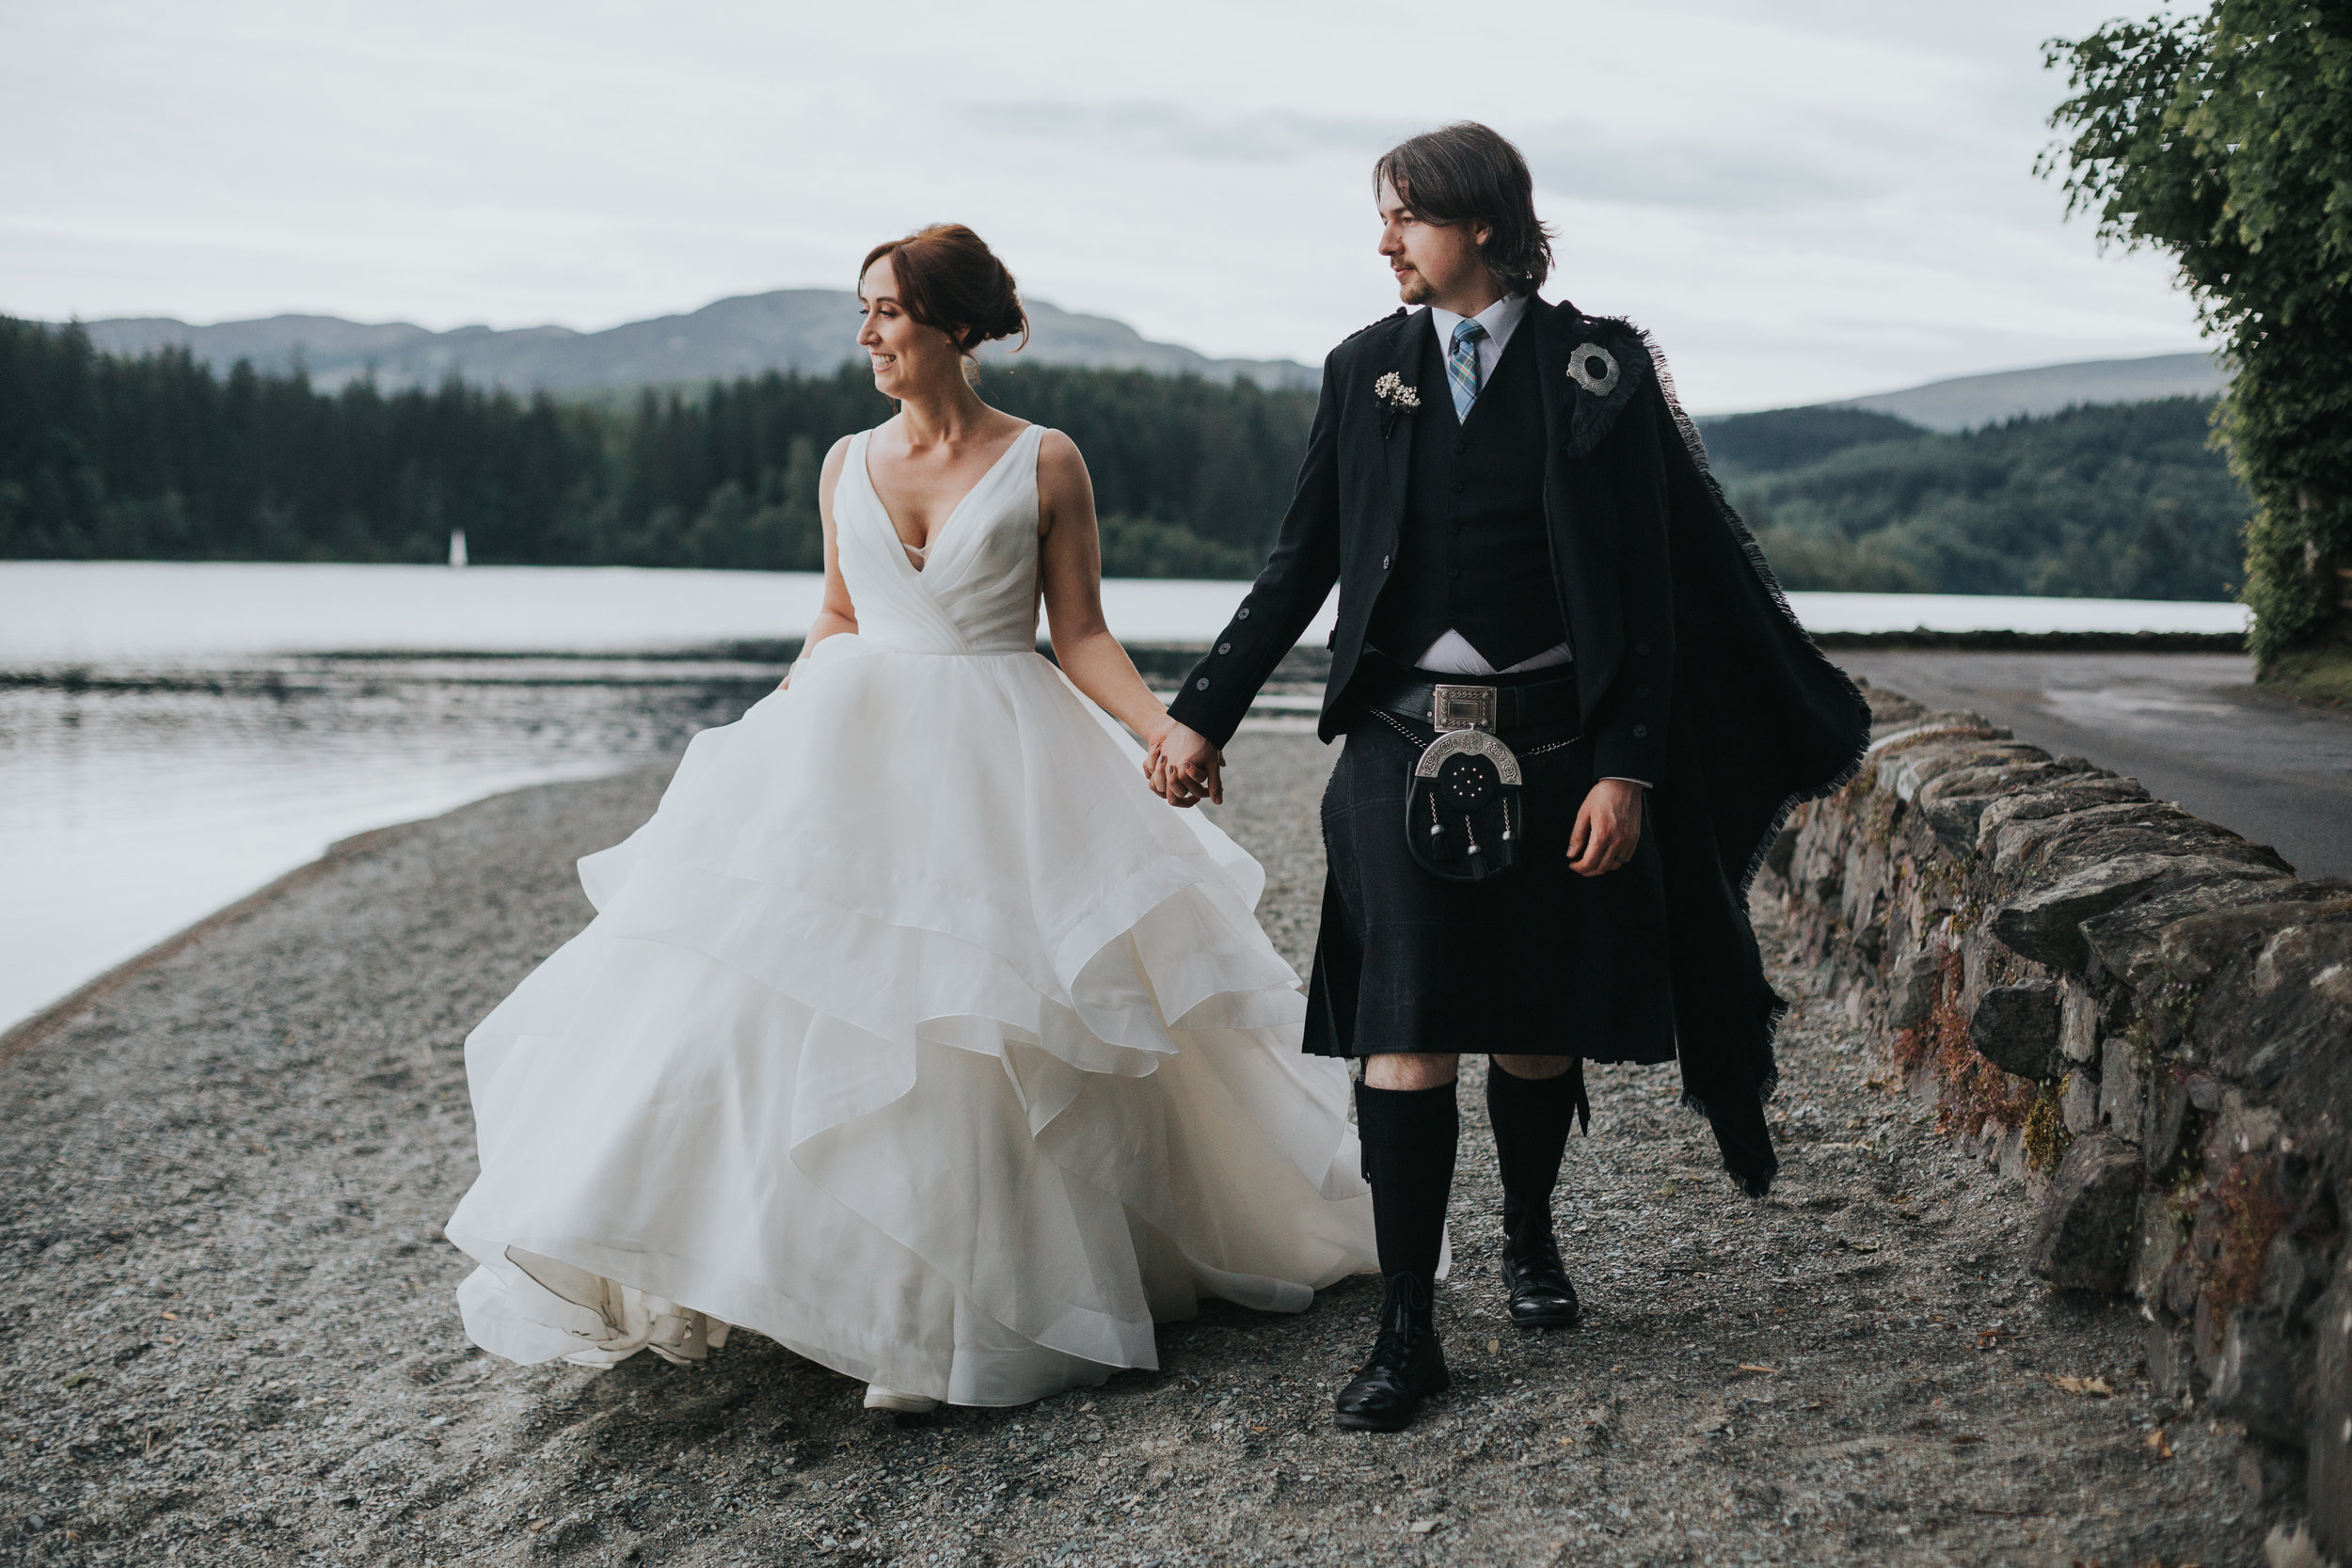 Bride and Kilted Groom walk together along the pebbled beach at Loch Ard, Scotland.